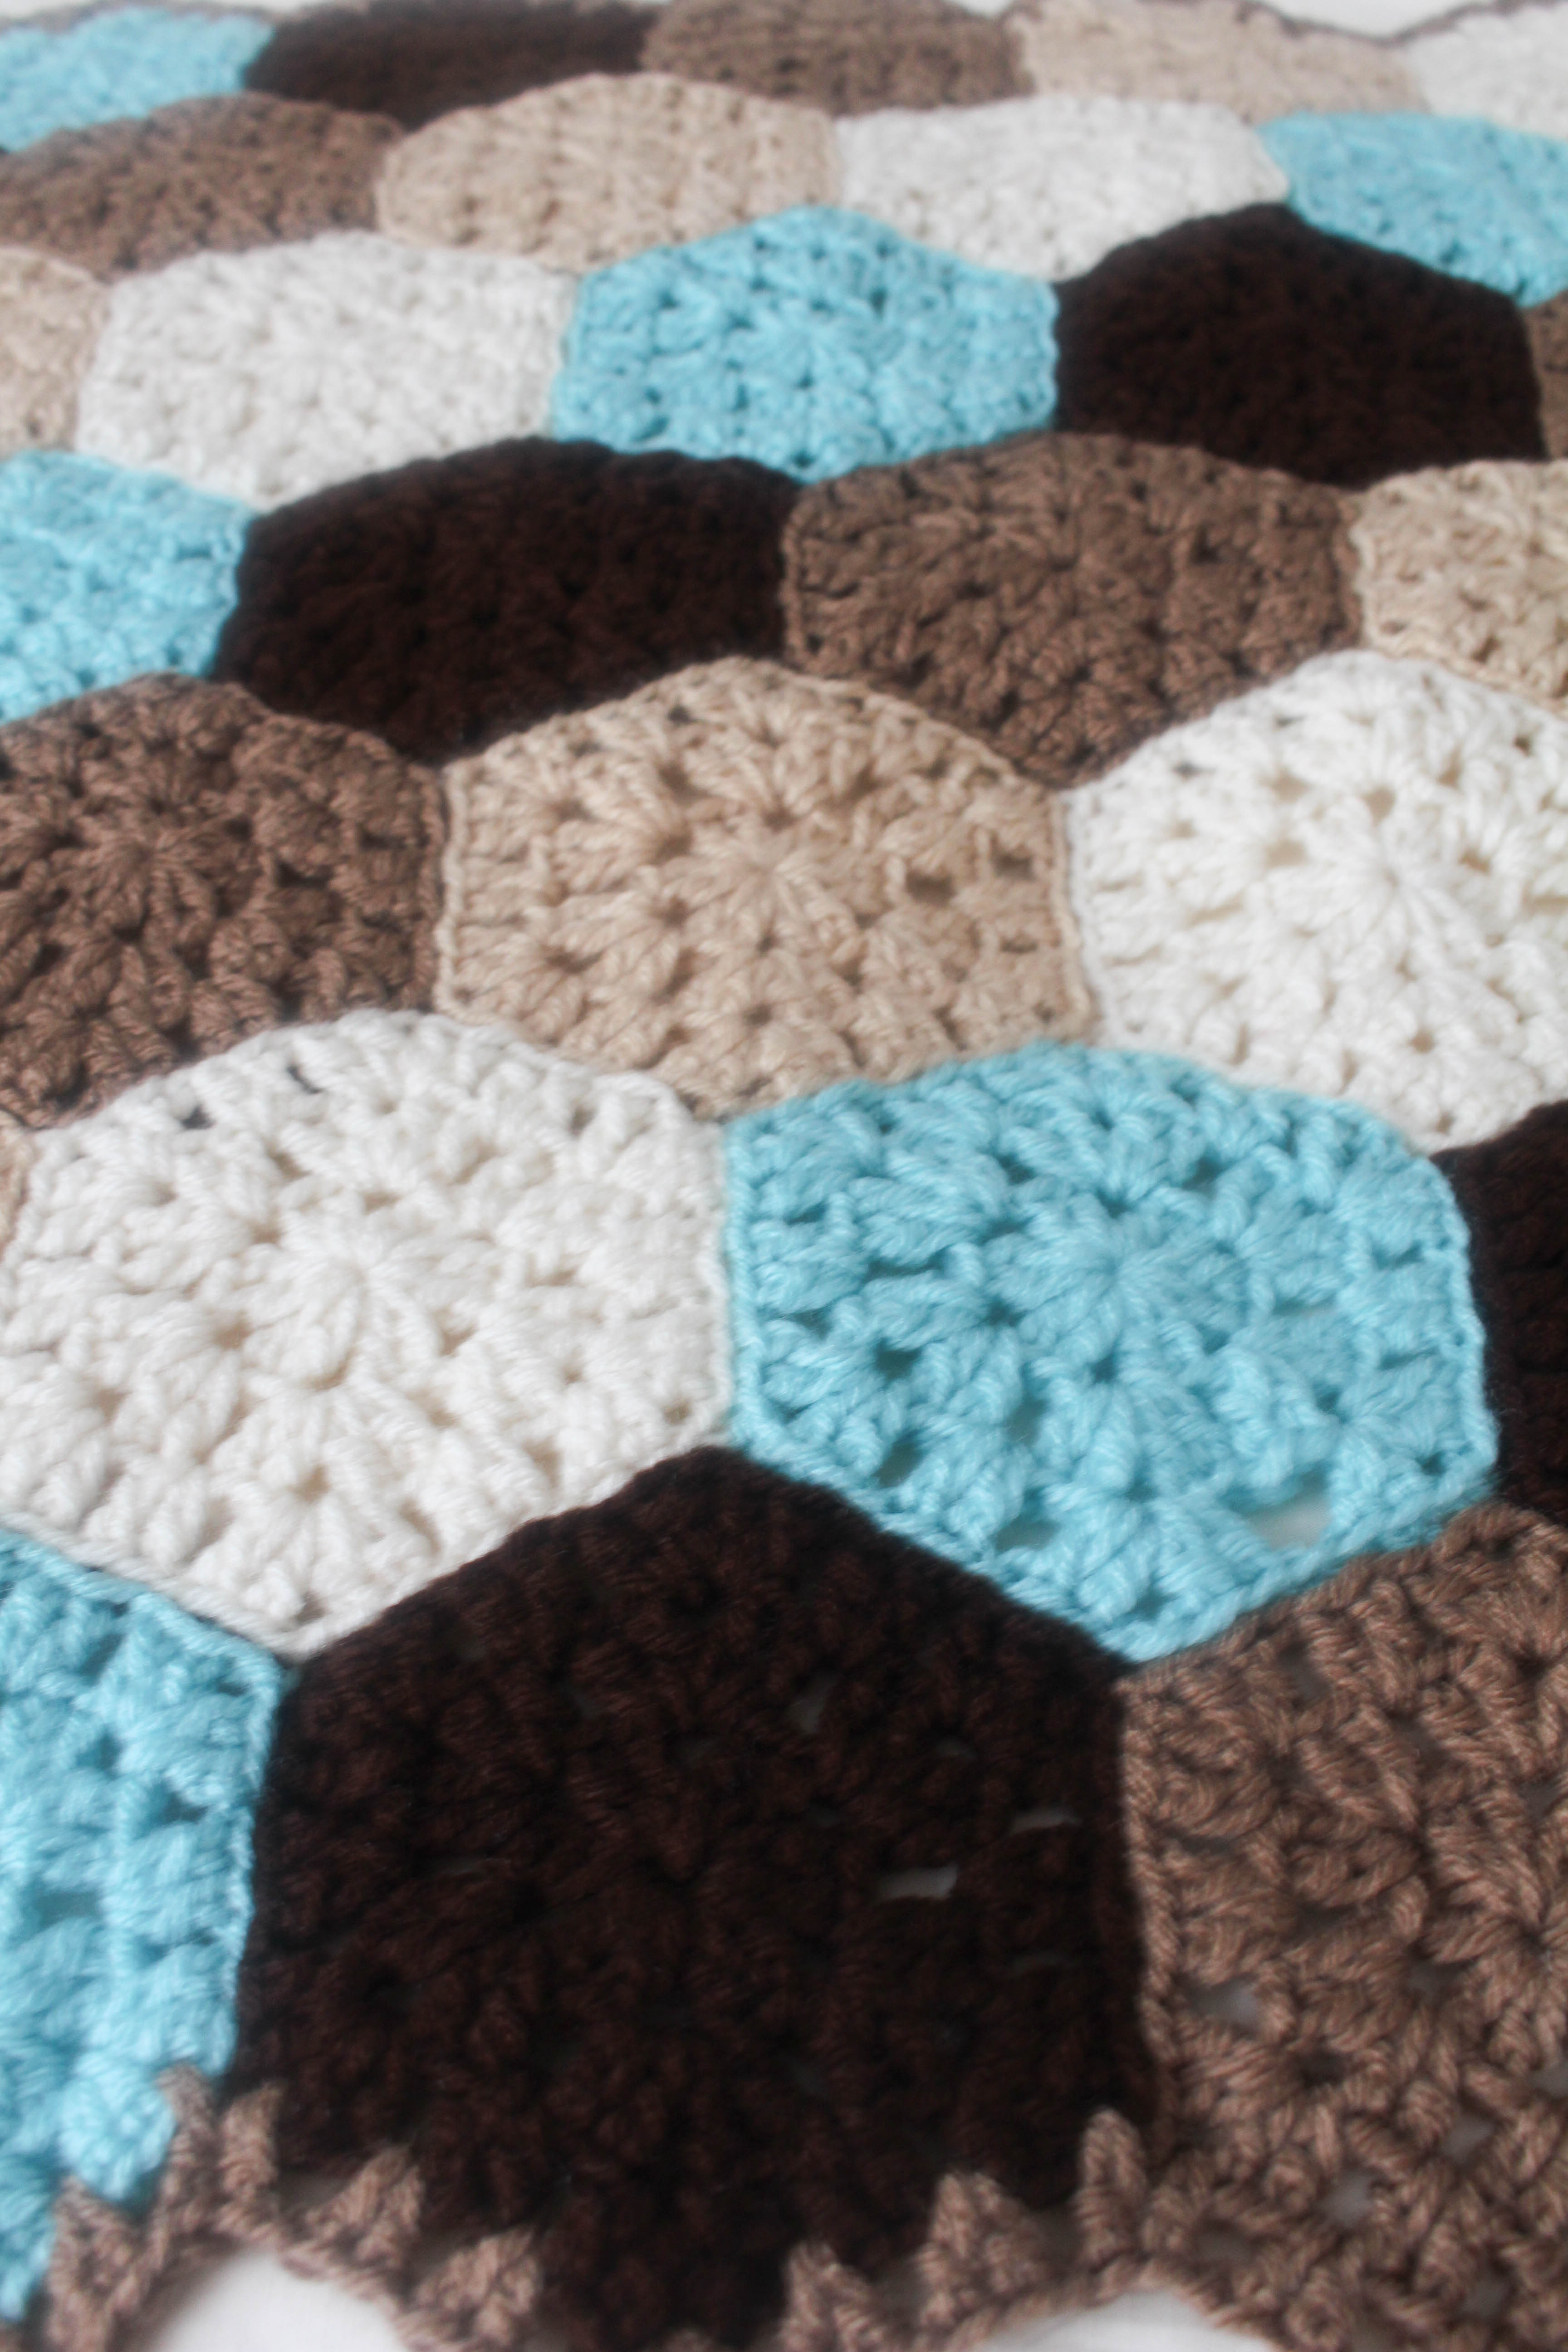 Crochet Stitch Honeycomb : Free Crochet Pattern: Hexagon Honeycomb Stroller Blanket - Stitch and ...